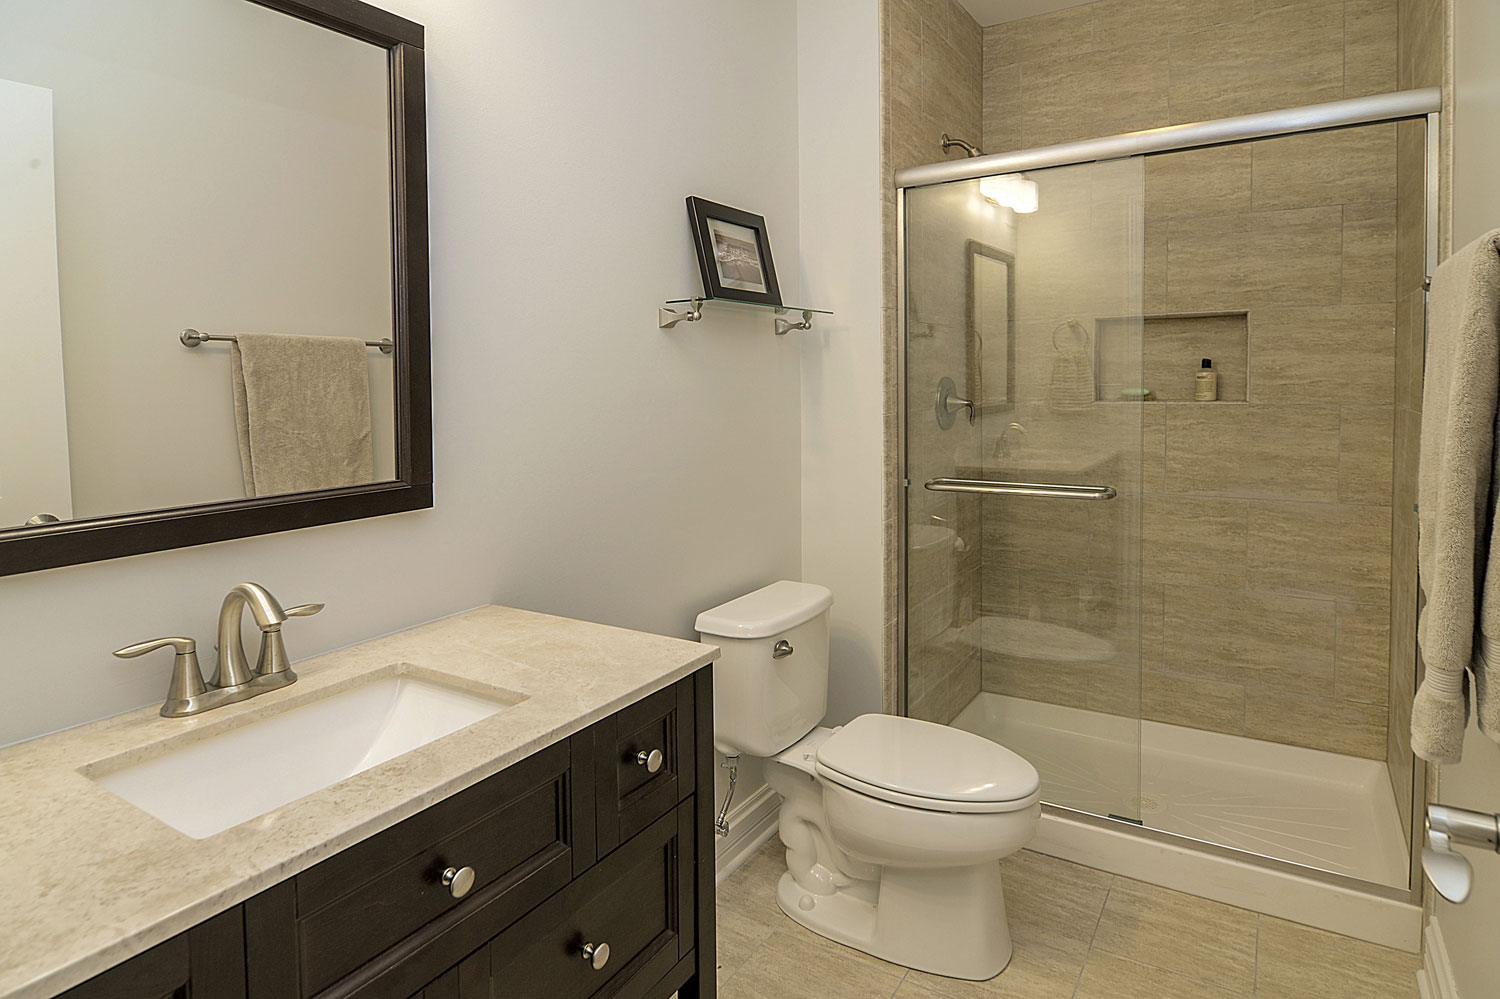 Superior ... Bathroom Remodeling Tile Cabinet Granite Quartz Ideas Wheaton Glen  Ellyn West Chicago Sebring Services